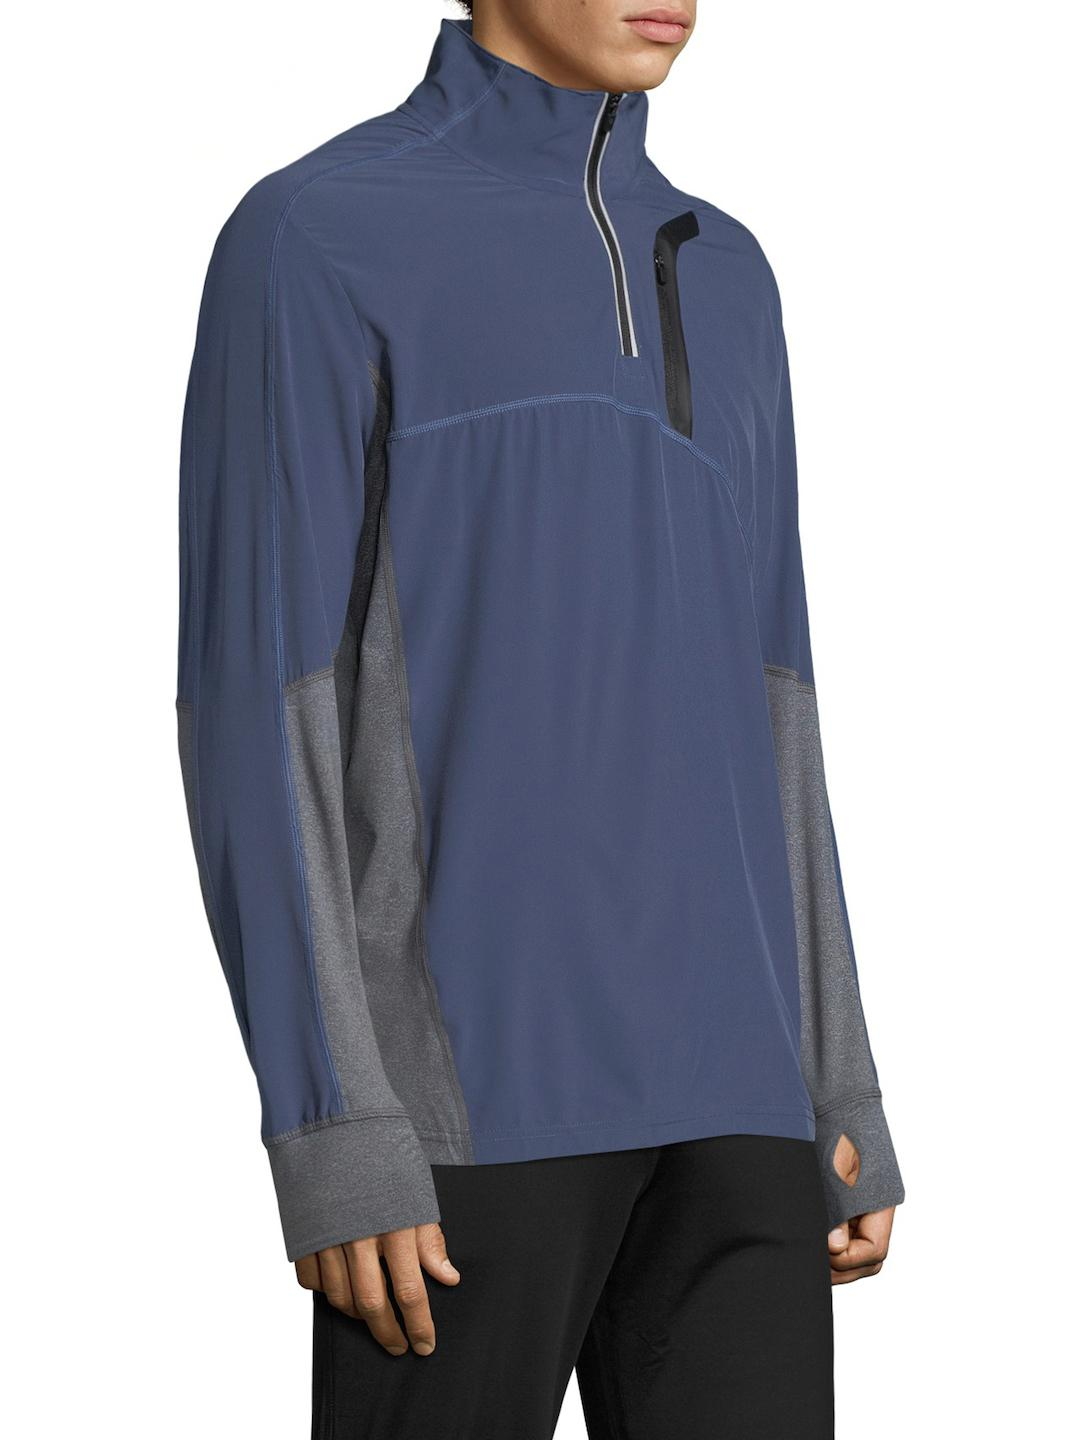 Mpg Synthetic Contra in Heather Navy (Blue) for Men